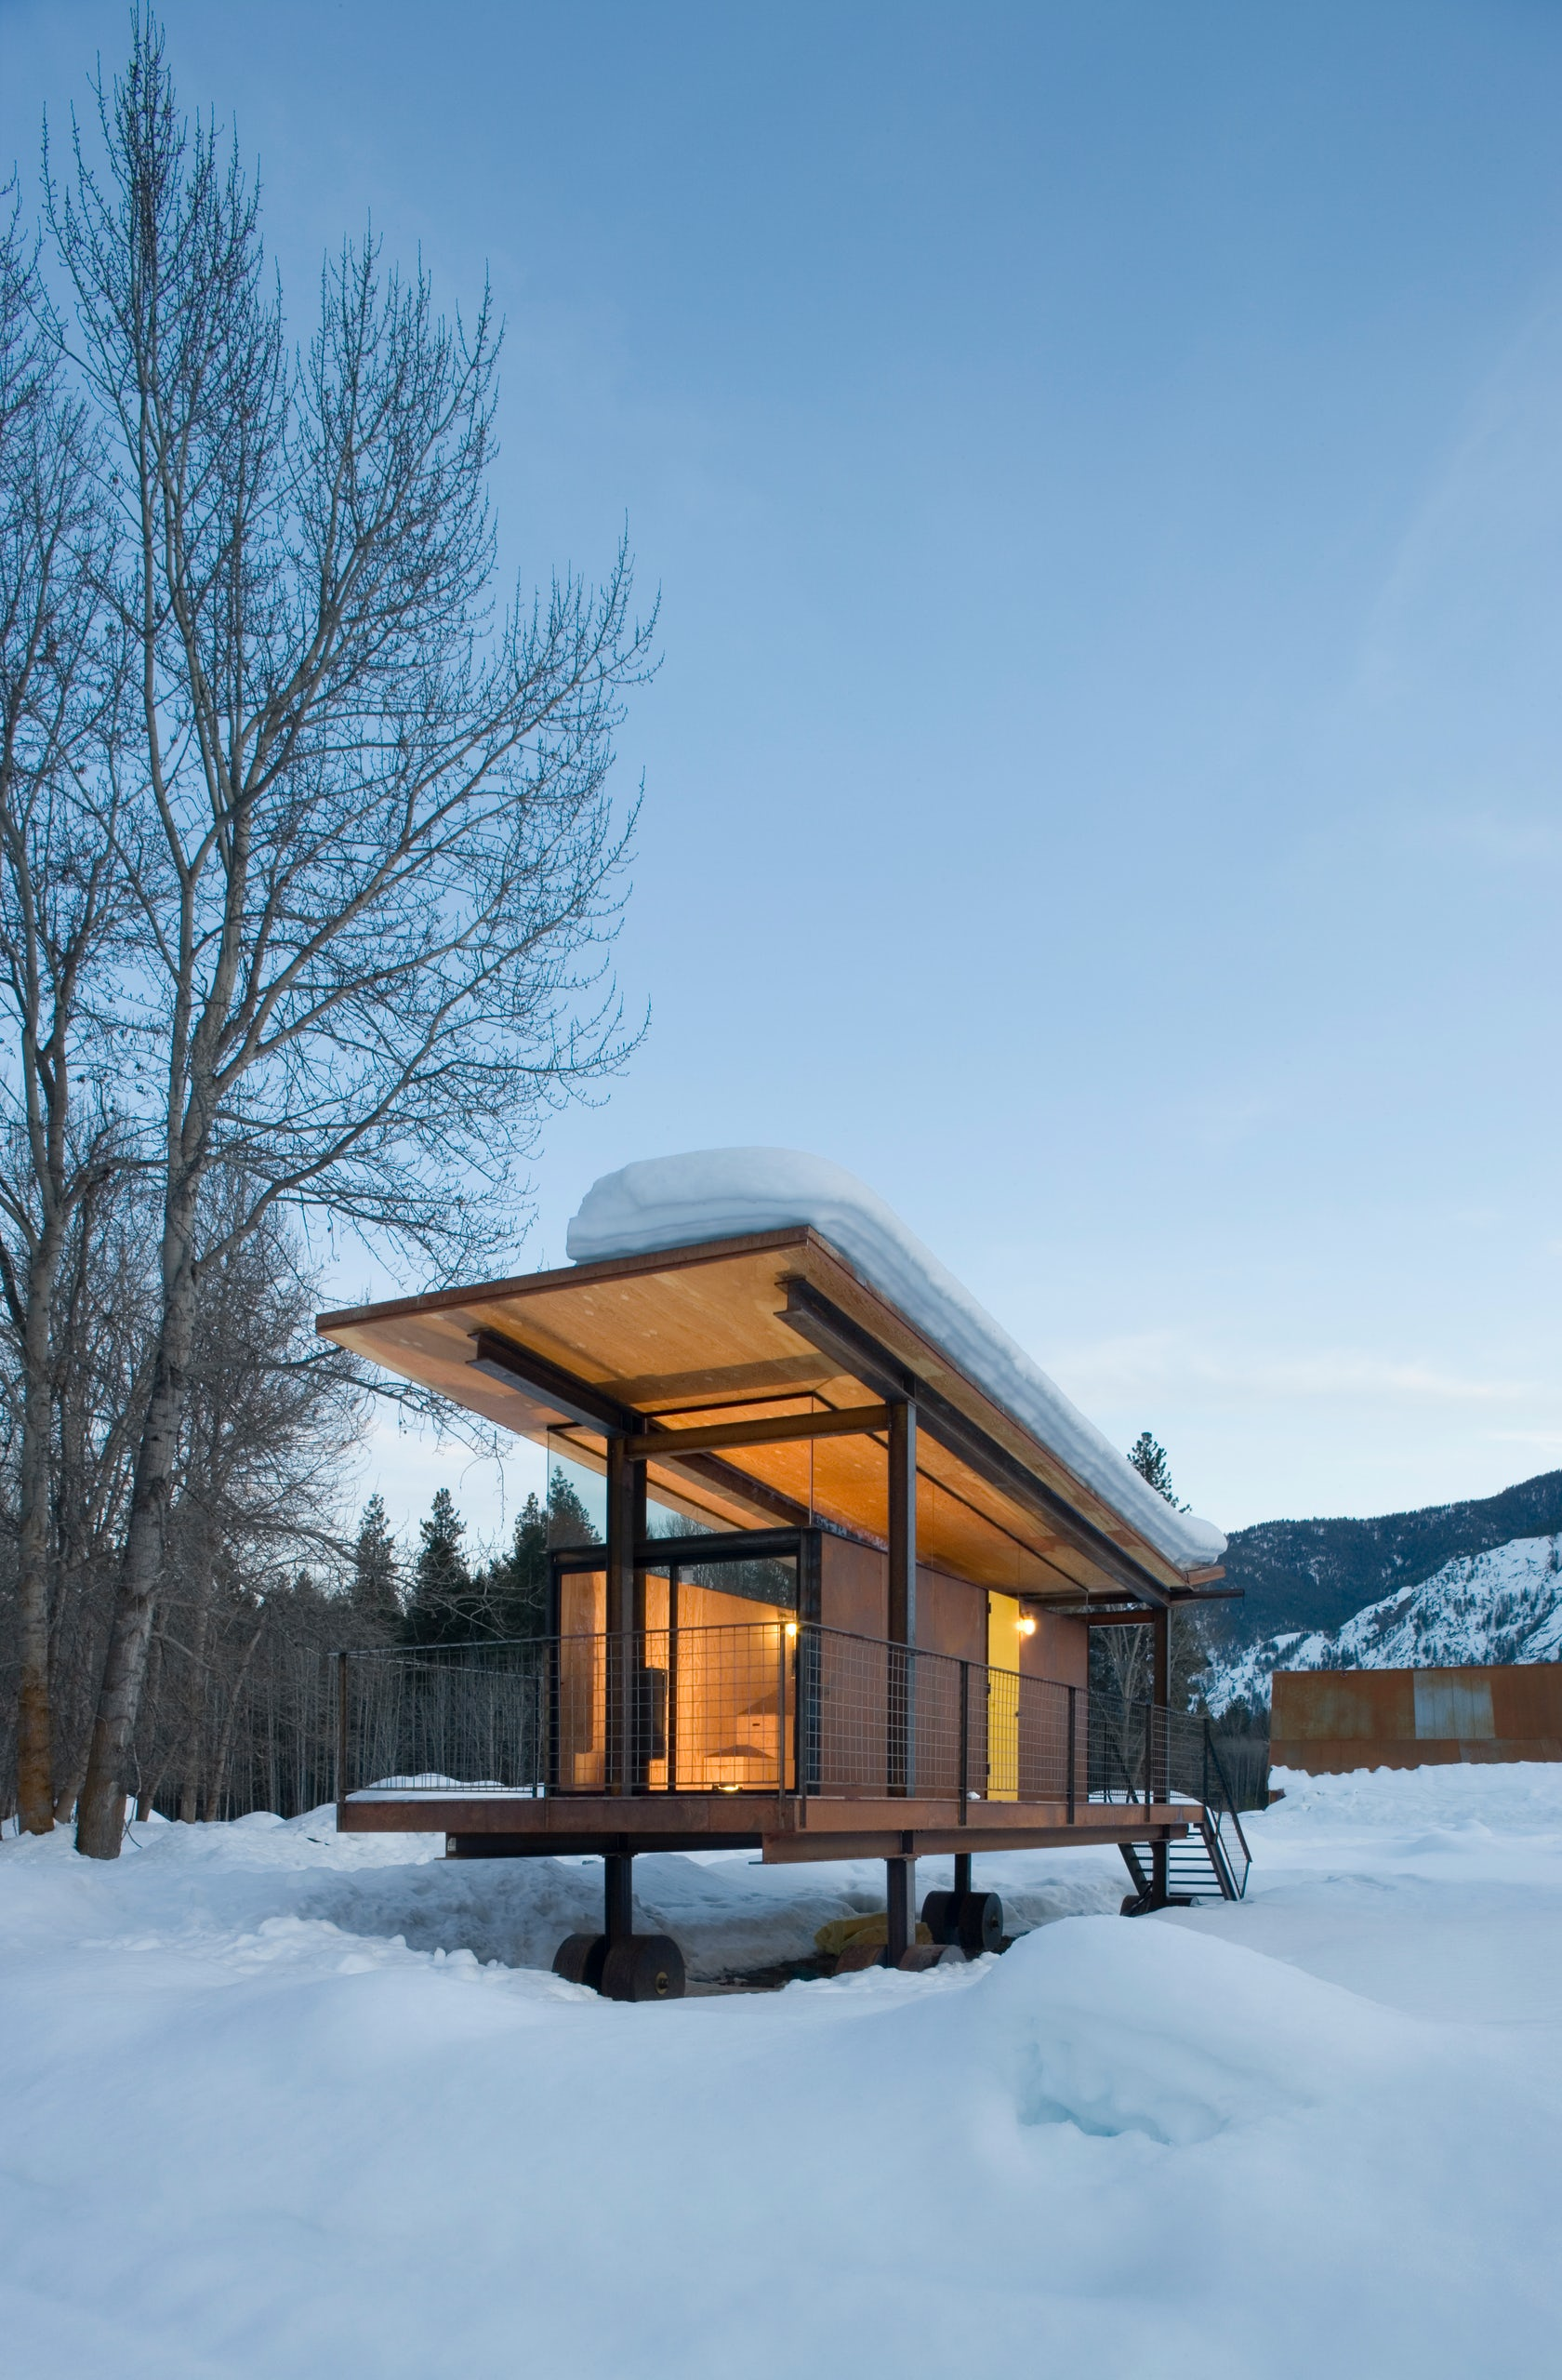 Rolling huts architizer for Tye river cabin co